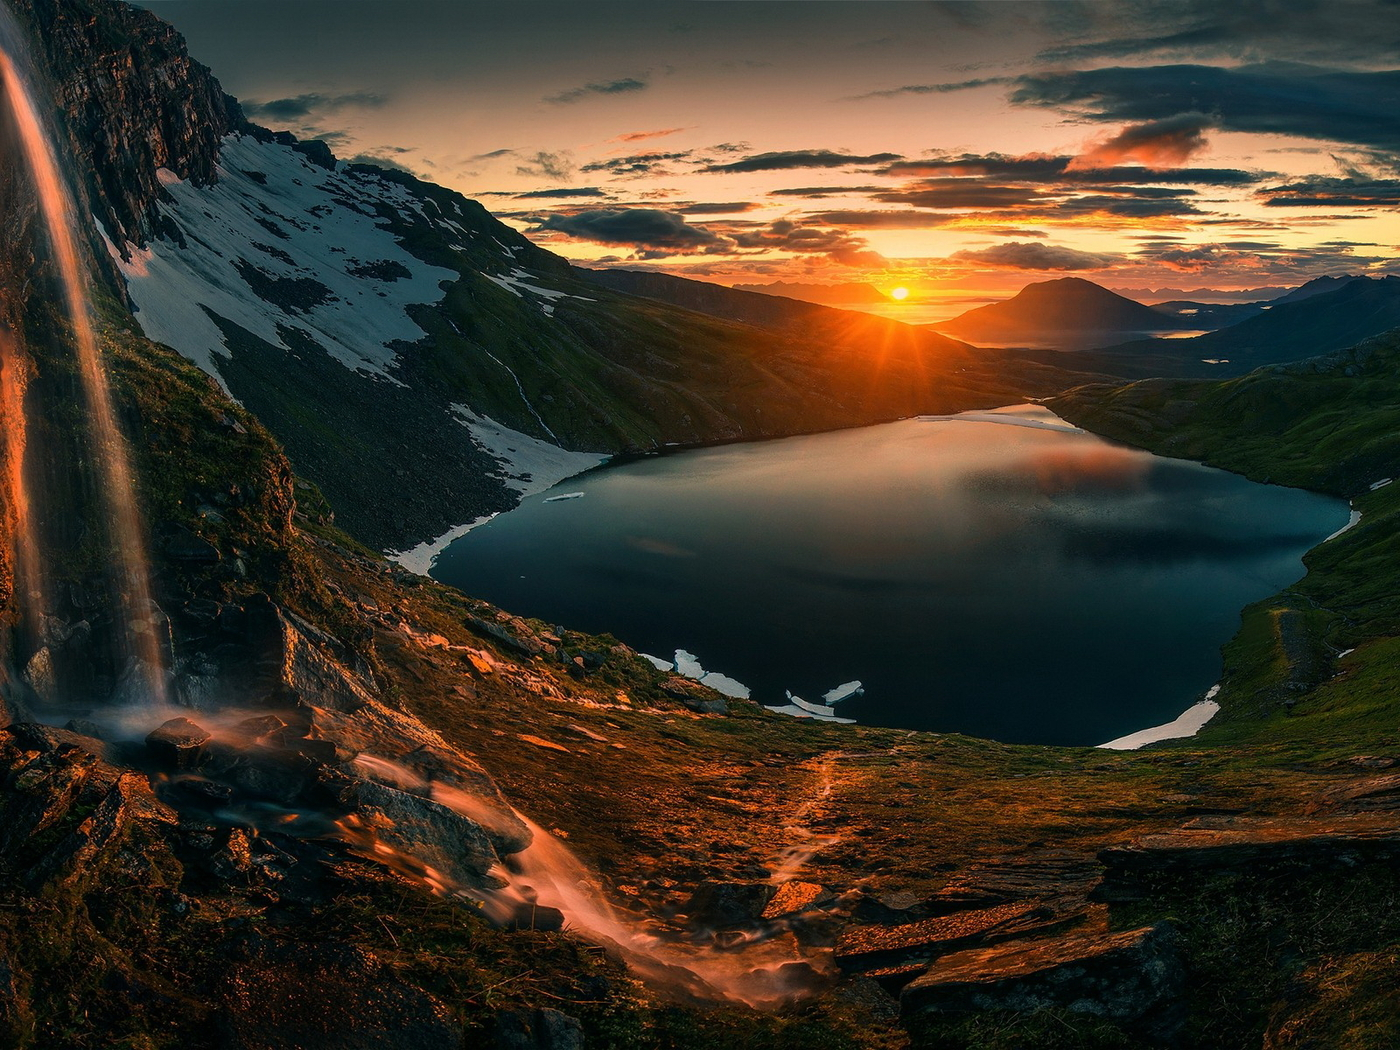 sunset-over-mountains-hd.jpg